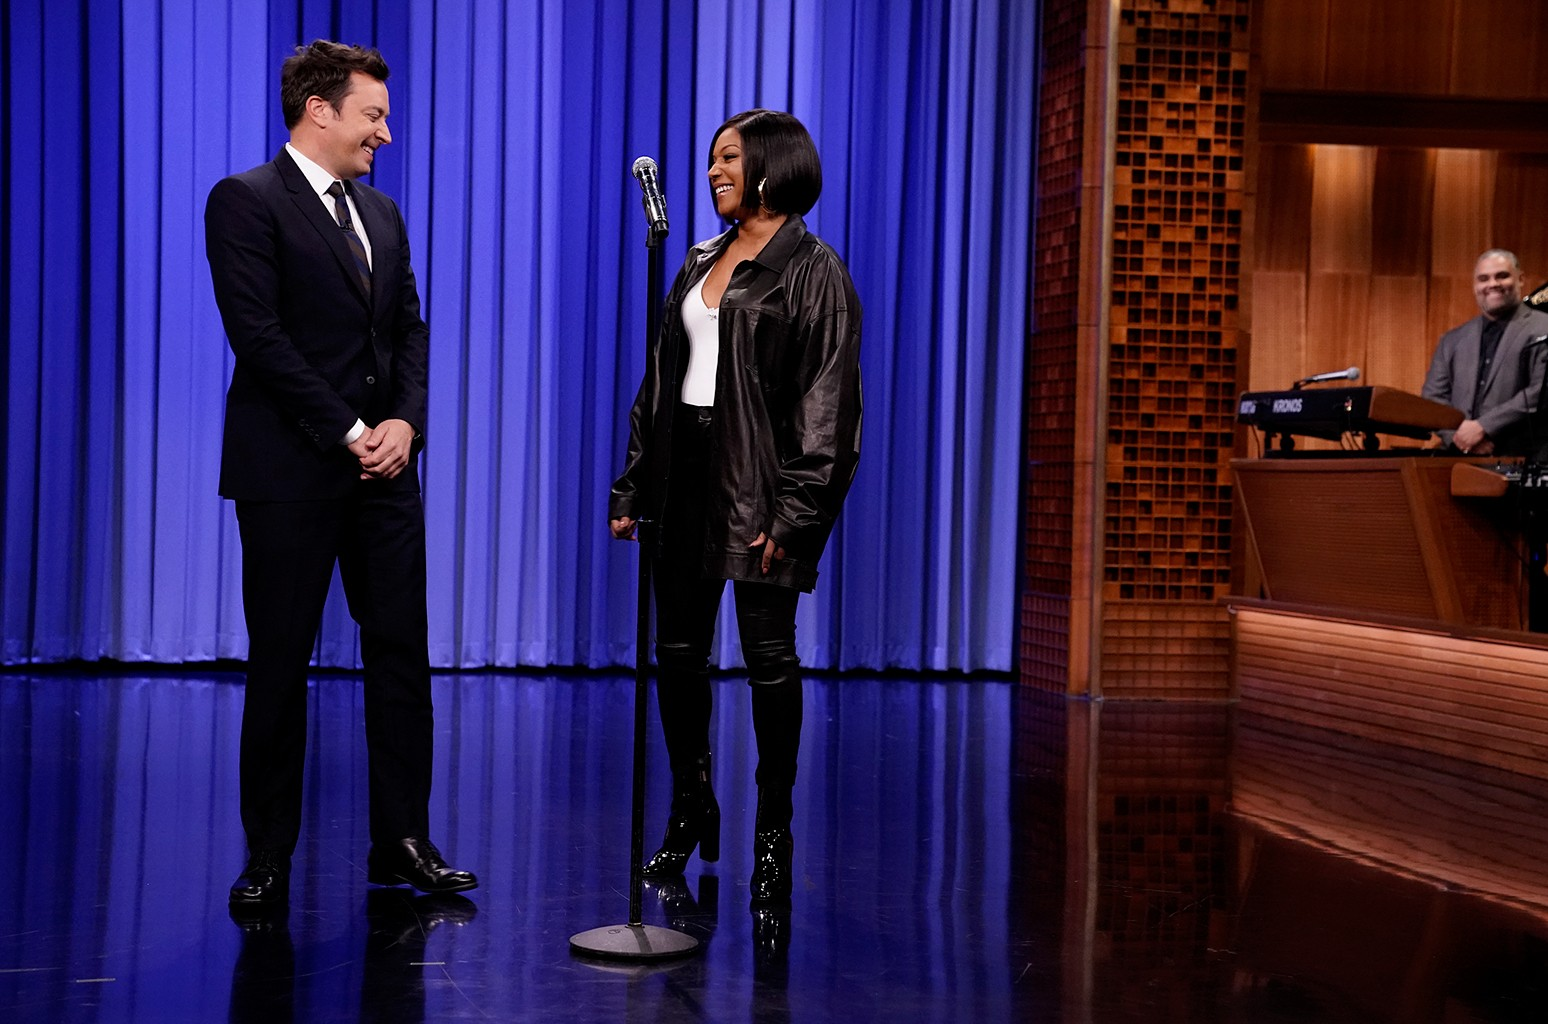 Jimmy Fallon and Tiffany Haddish